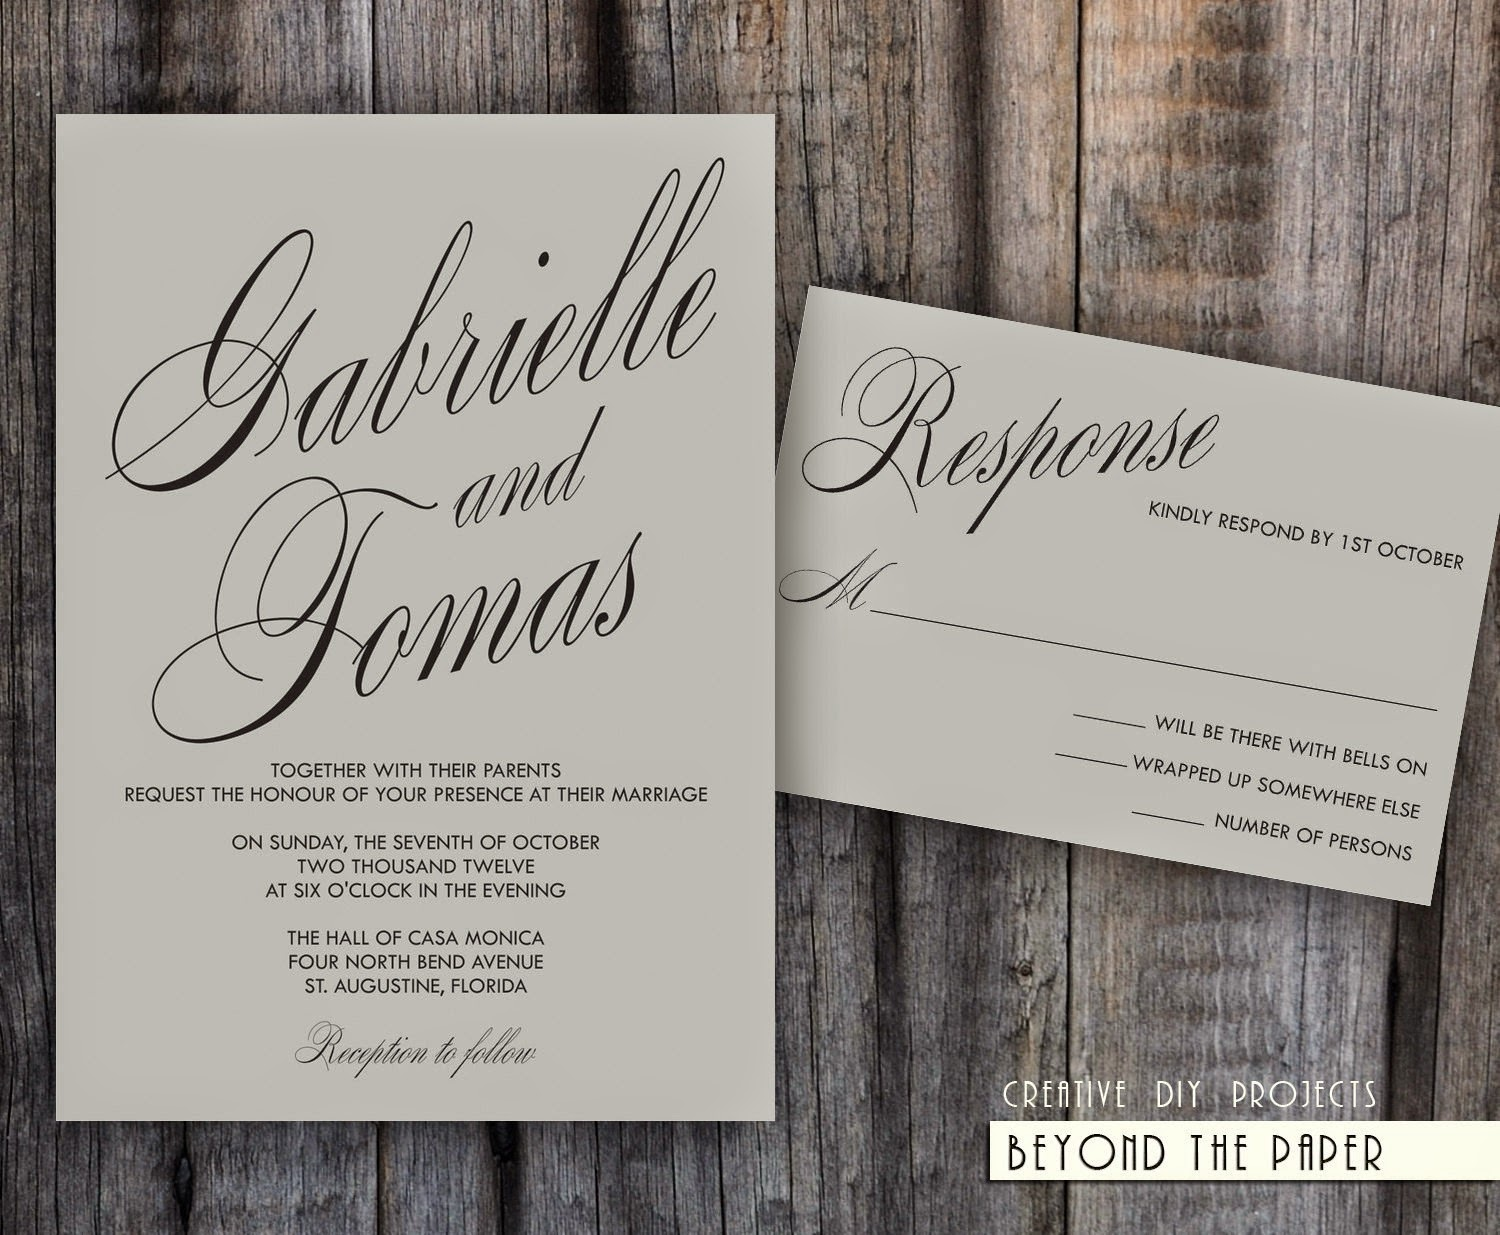 The Best Wedding Invitations: Cheap Wedding Invitations: 50 Of The Best Wedding